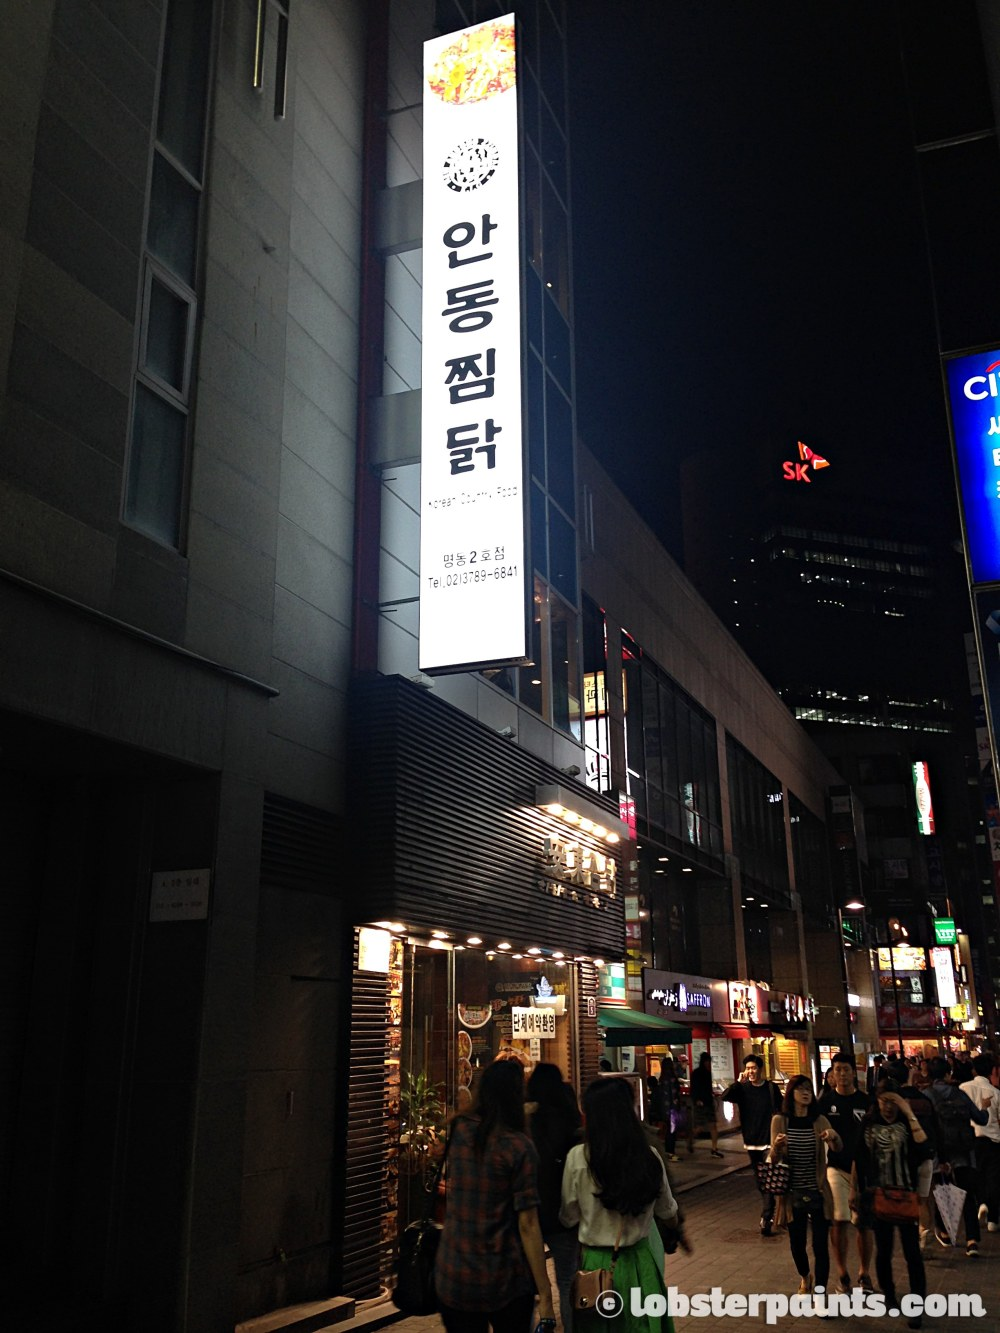 29 Sep 2014: Andong Jjimdak 안동찜닭 @ Myeongdong | Seoul, South Korea